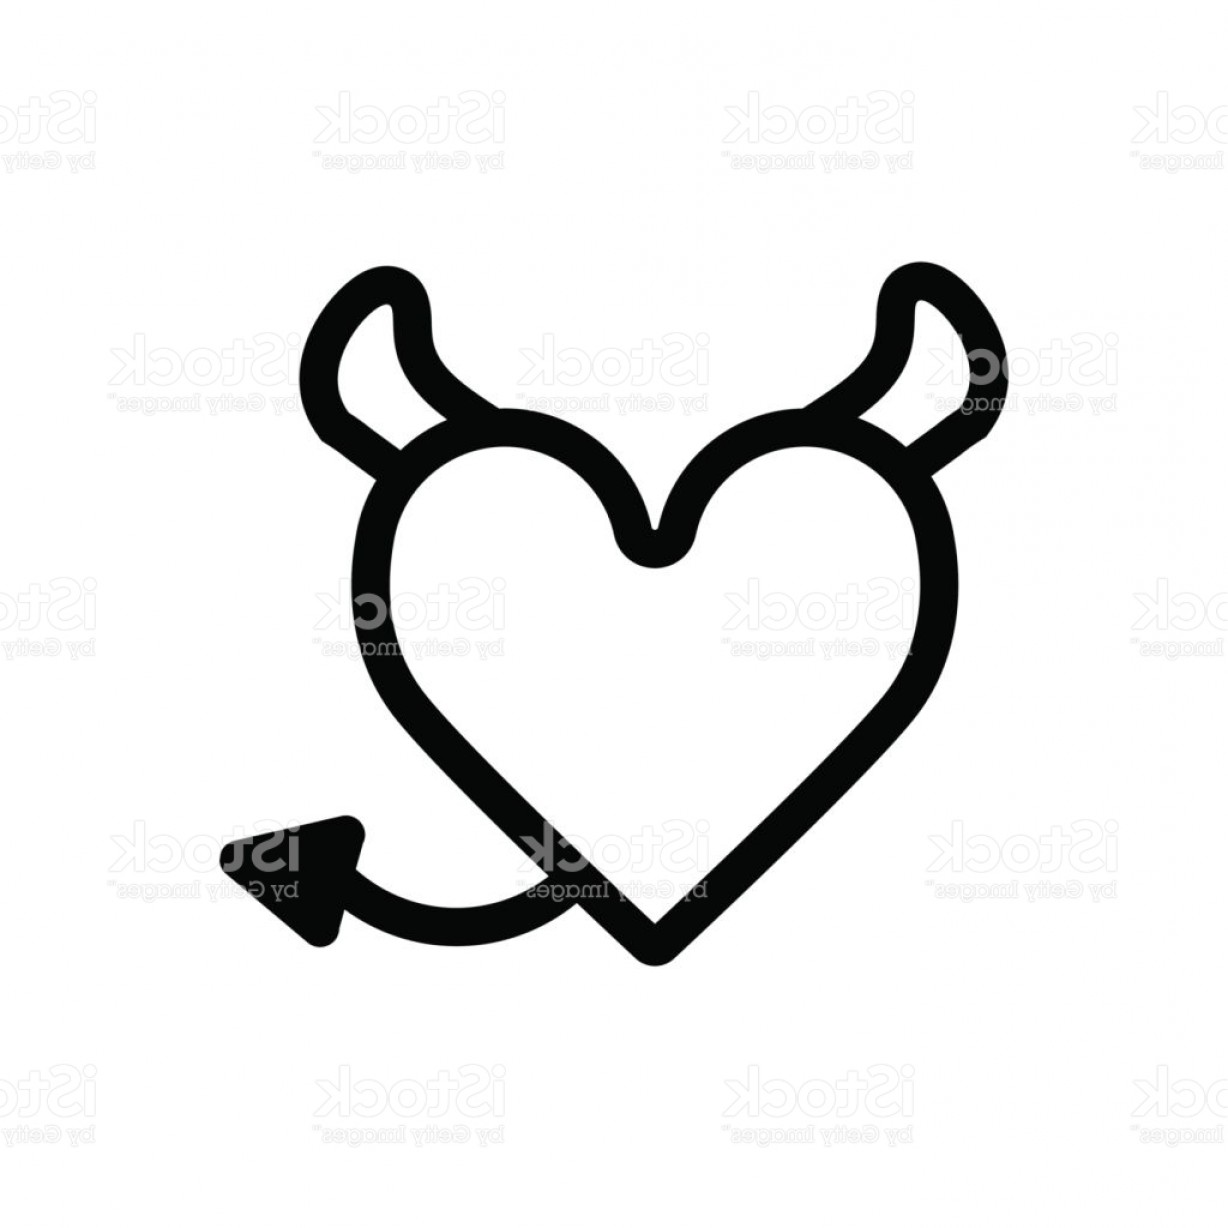 1228x1228 Devil Heart With Horns And Tail Heart Vector Icon Black And White